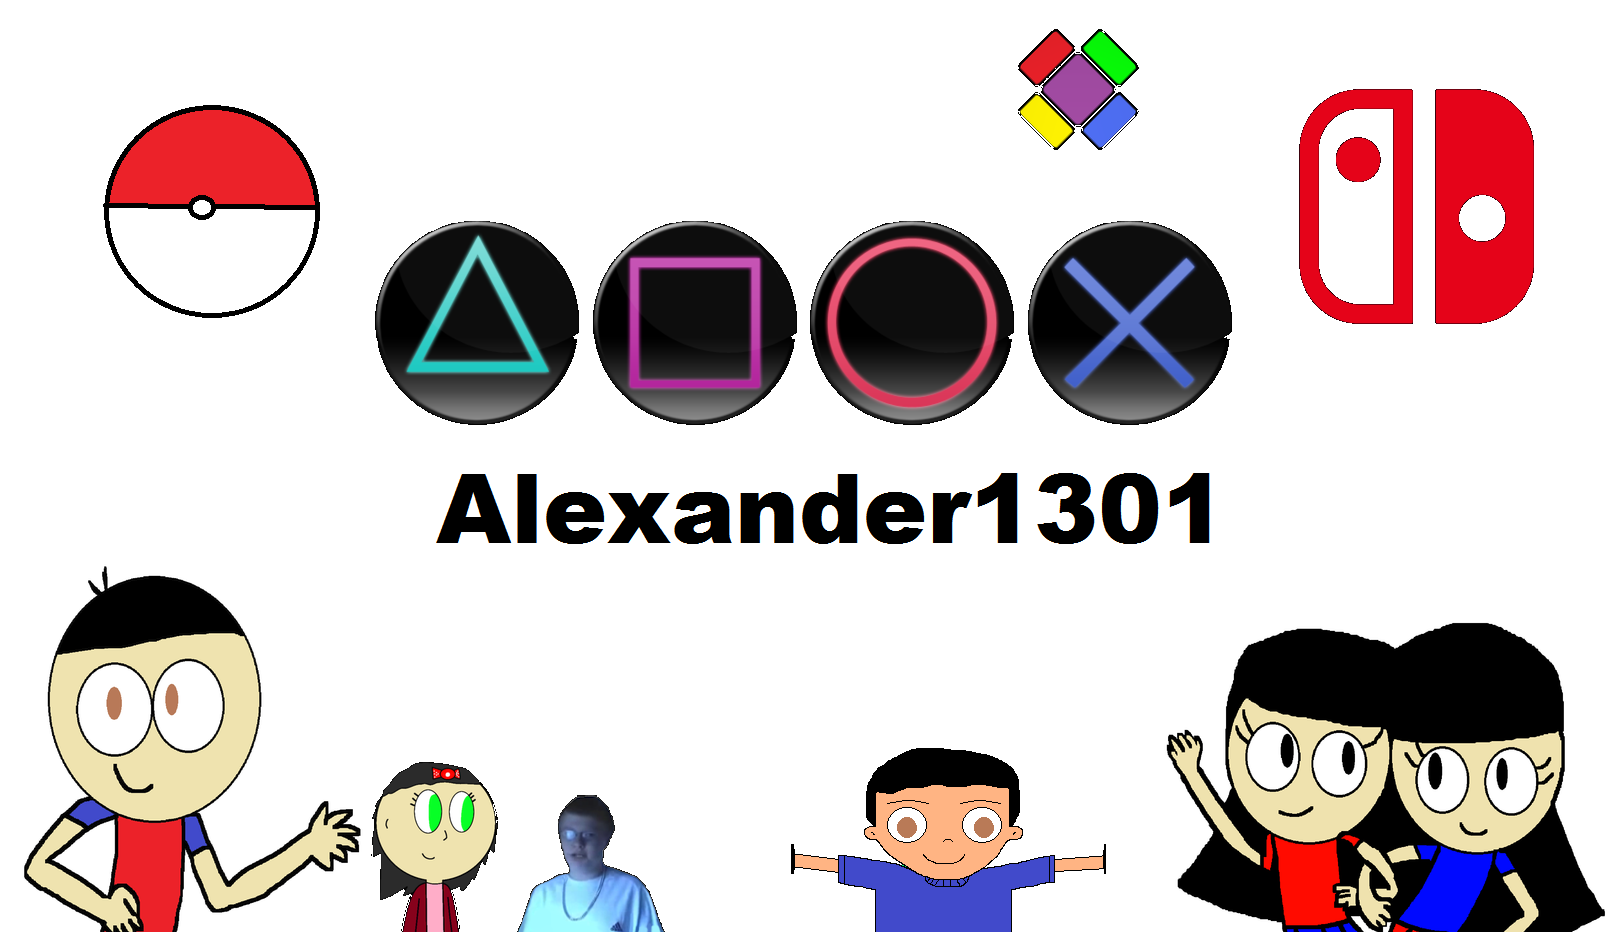 alexander1301's Profile Picture